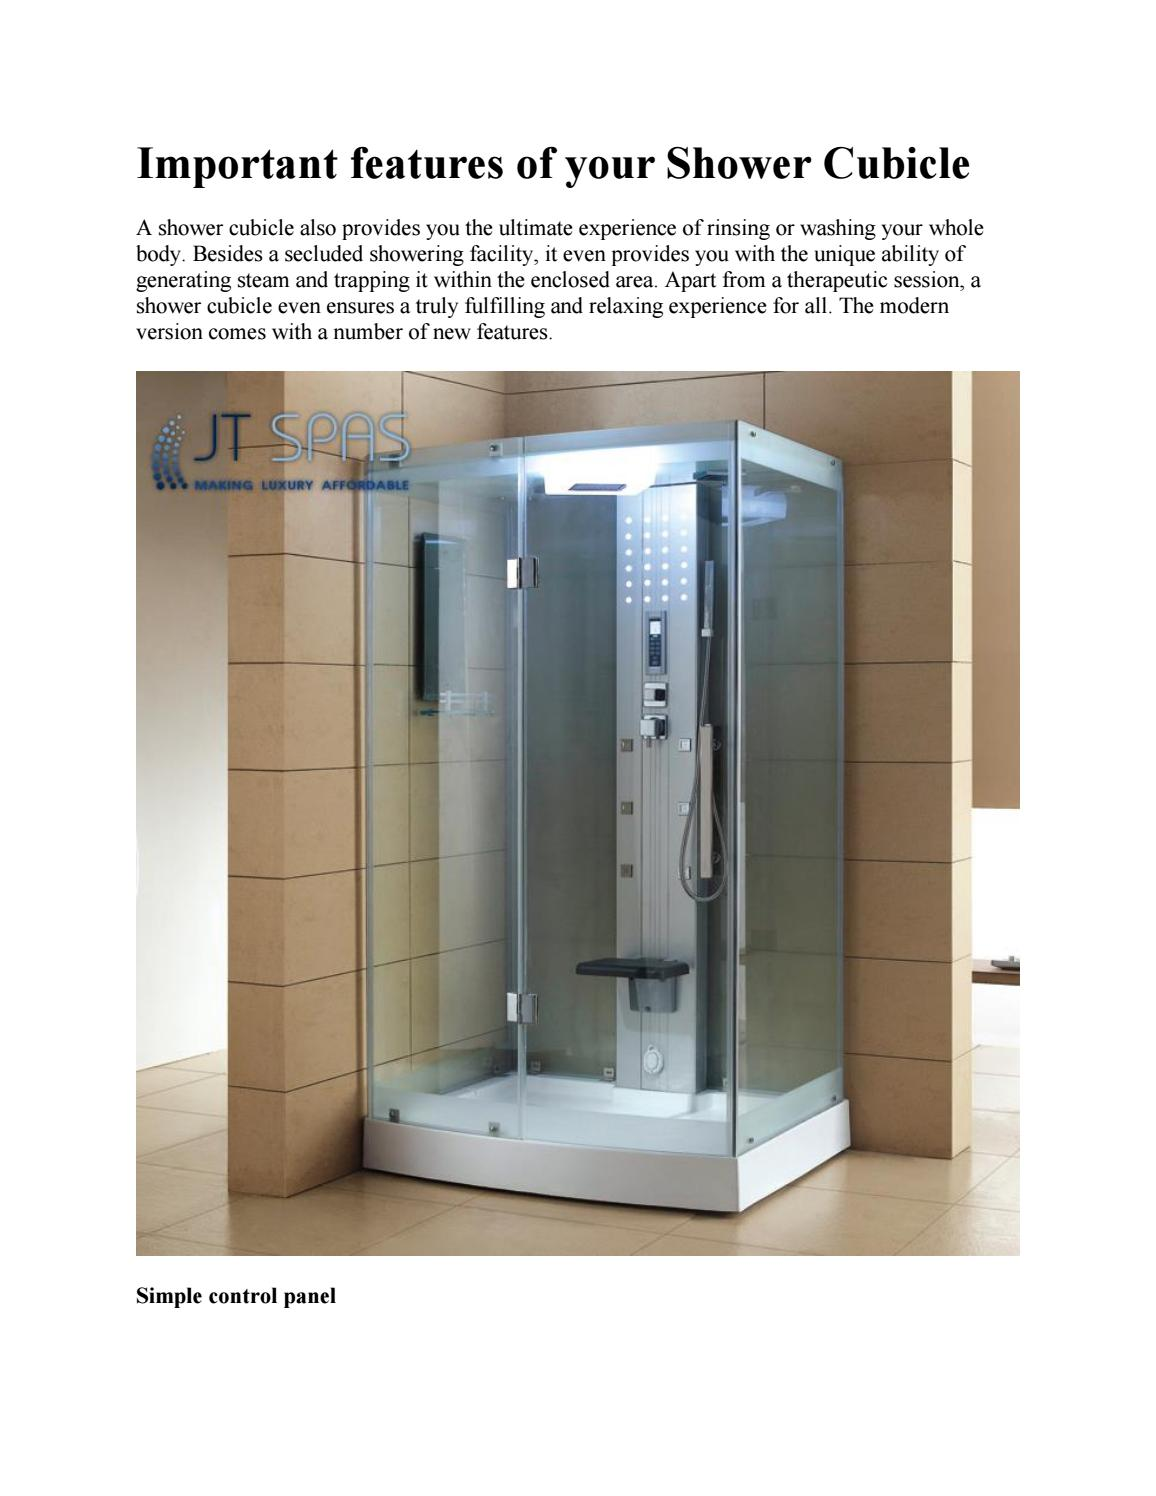 Important features of your Shower Cubicle by JTSpas - issuu